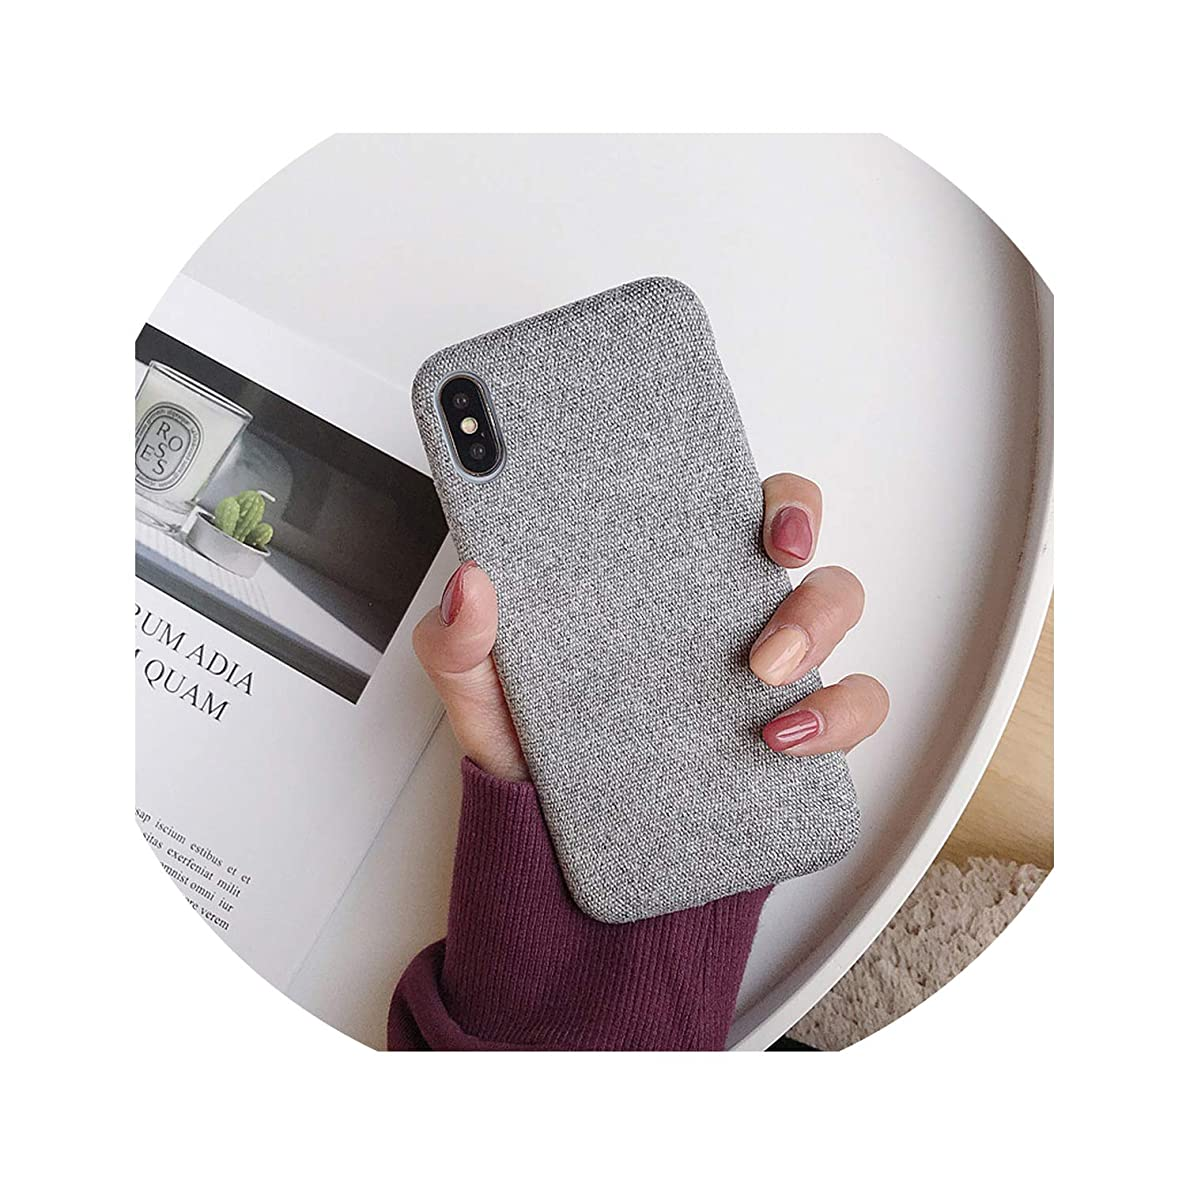 Cloth Texture Soft Case for iPhone X for iPhone 7 8 6 6S Plus Xs Max XR Ultra-Thin Canvas Pattern Phone Cases,IK51-FBLightGray,for iPhone 8plus